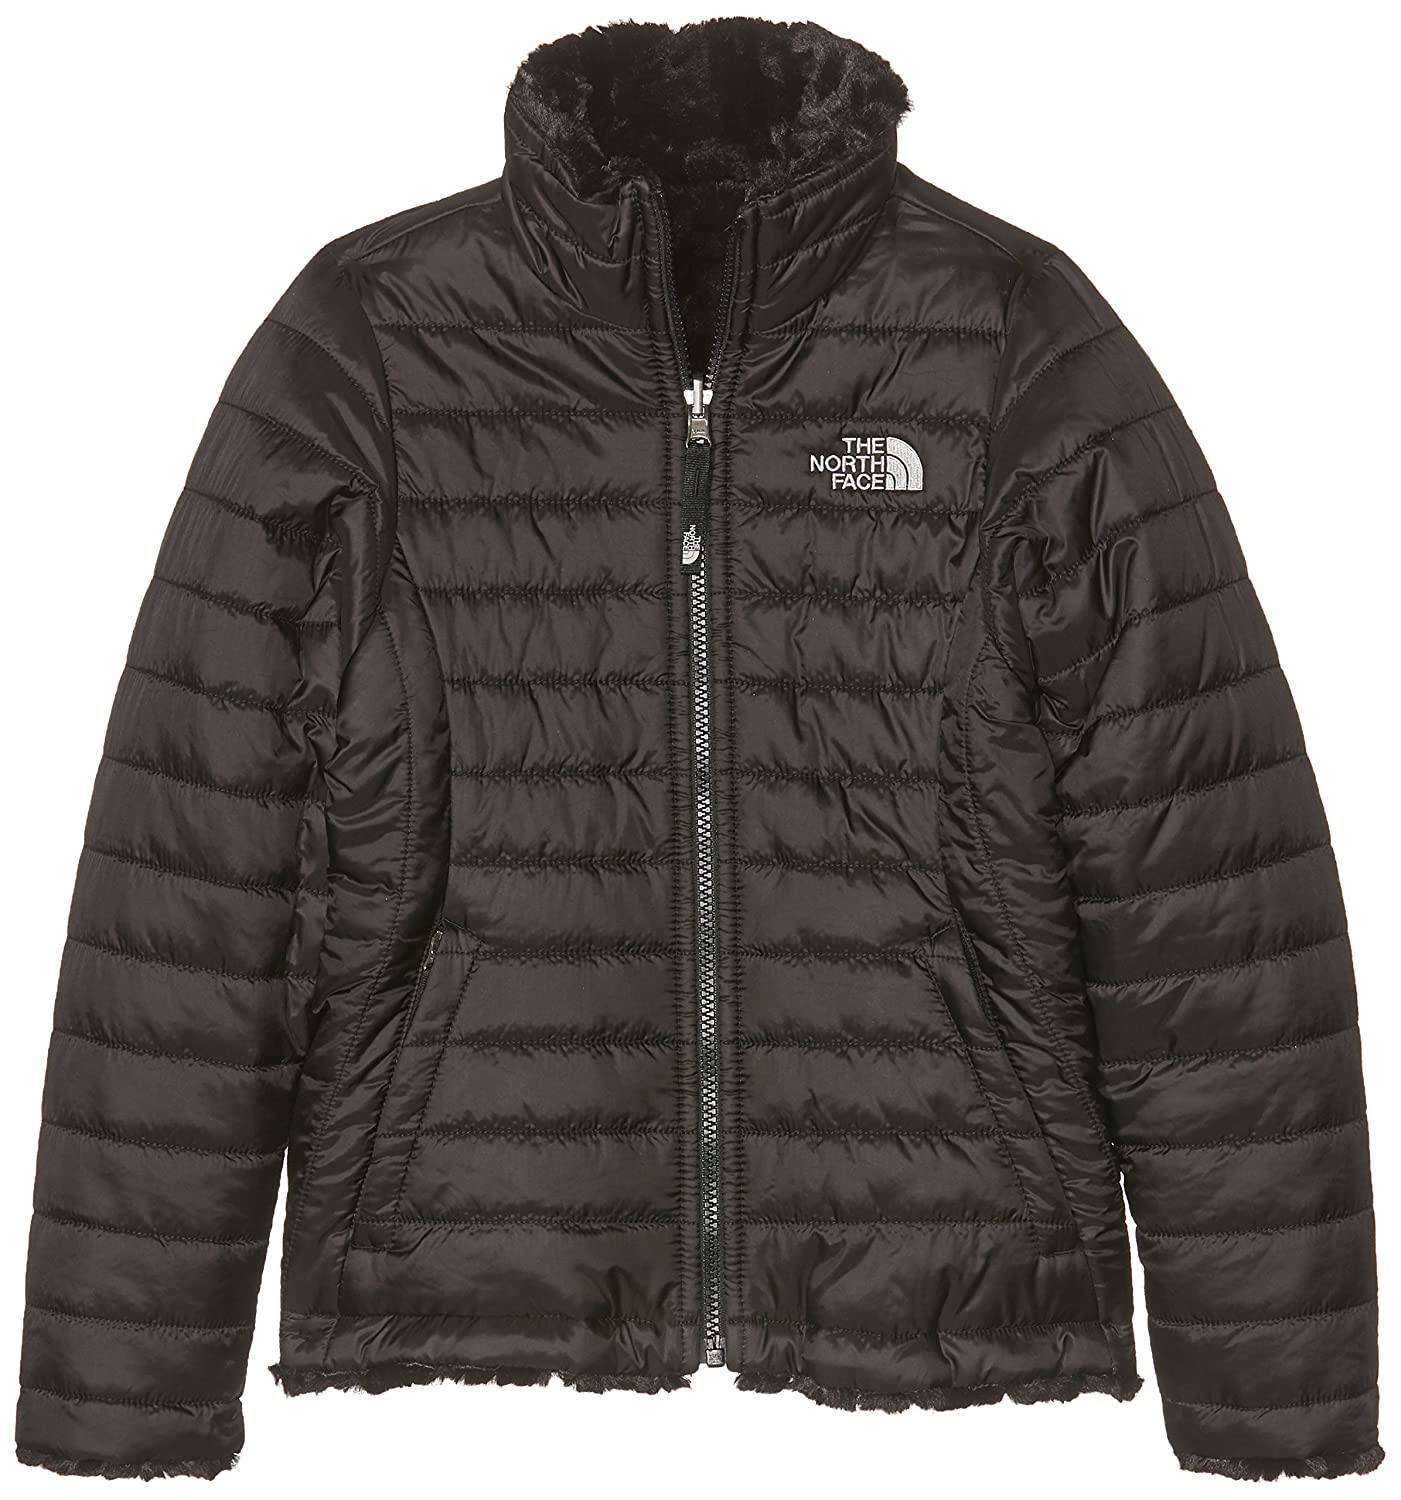 ee59dc93672b WARM AND SOFT  She ll get twice the outdoor performance from this  versatile